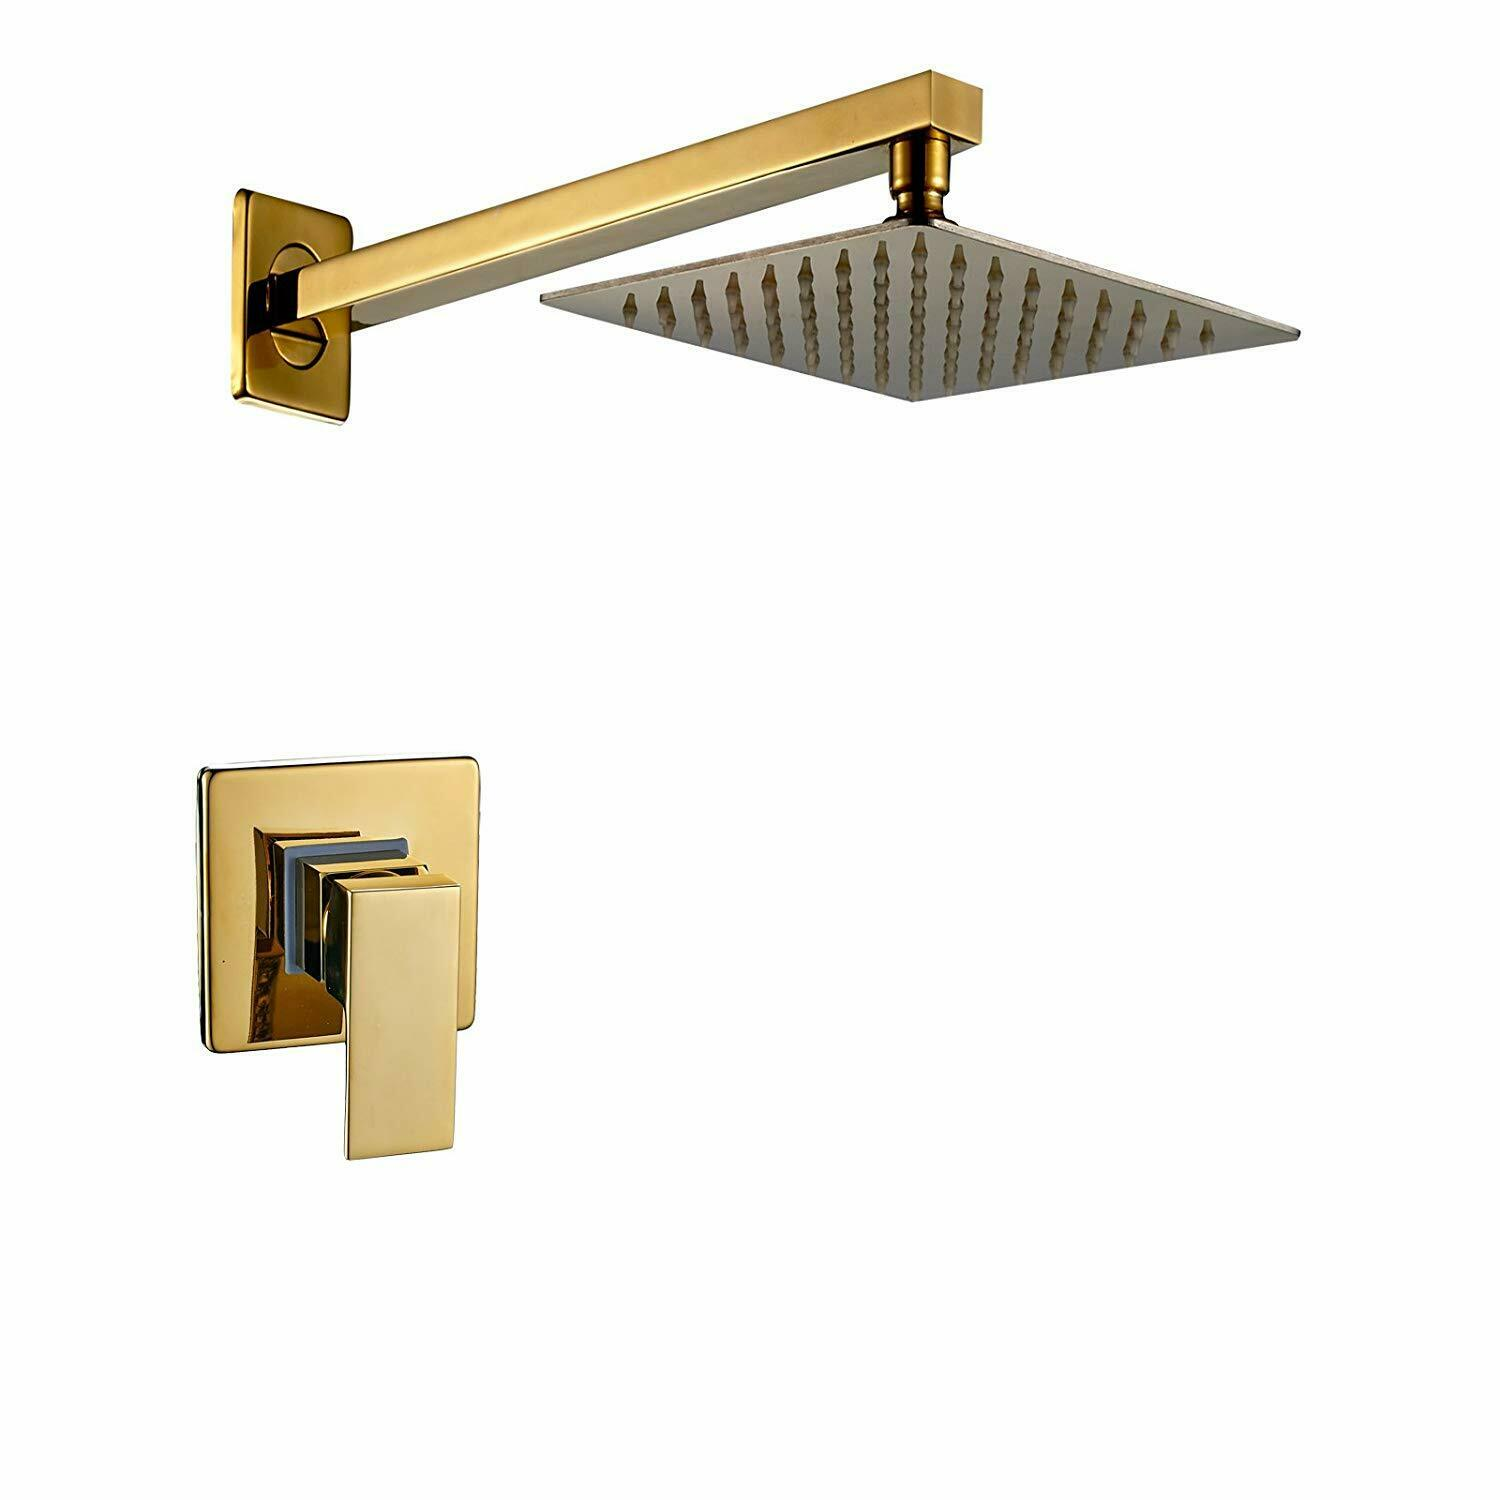 Details About Gold Wall Mounted 8 Inch Rainfall Shower Head Faucet With One Way Mixer Valve